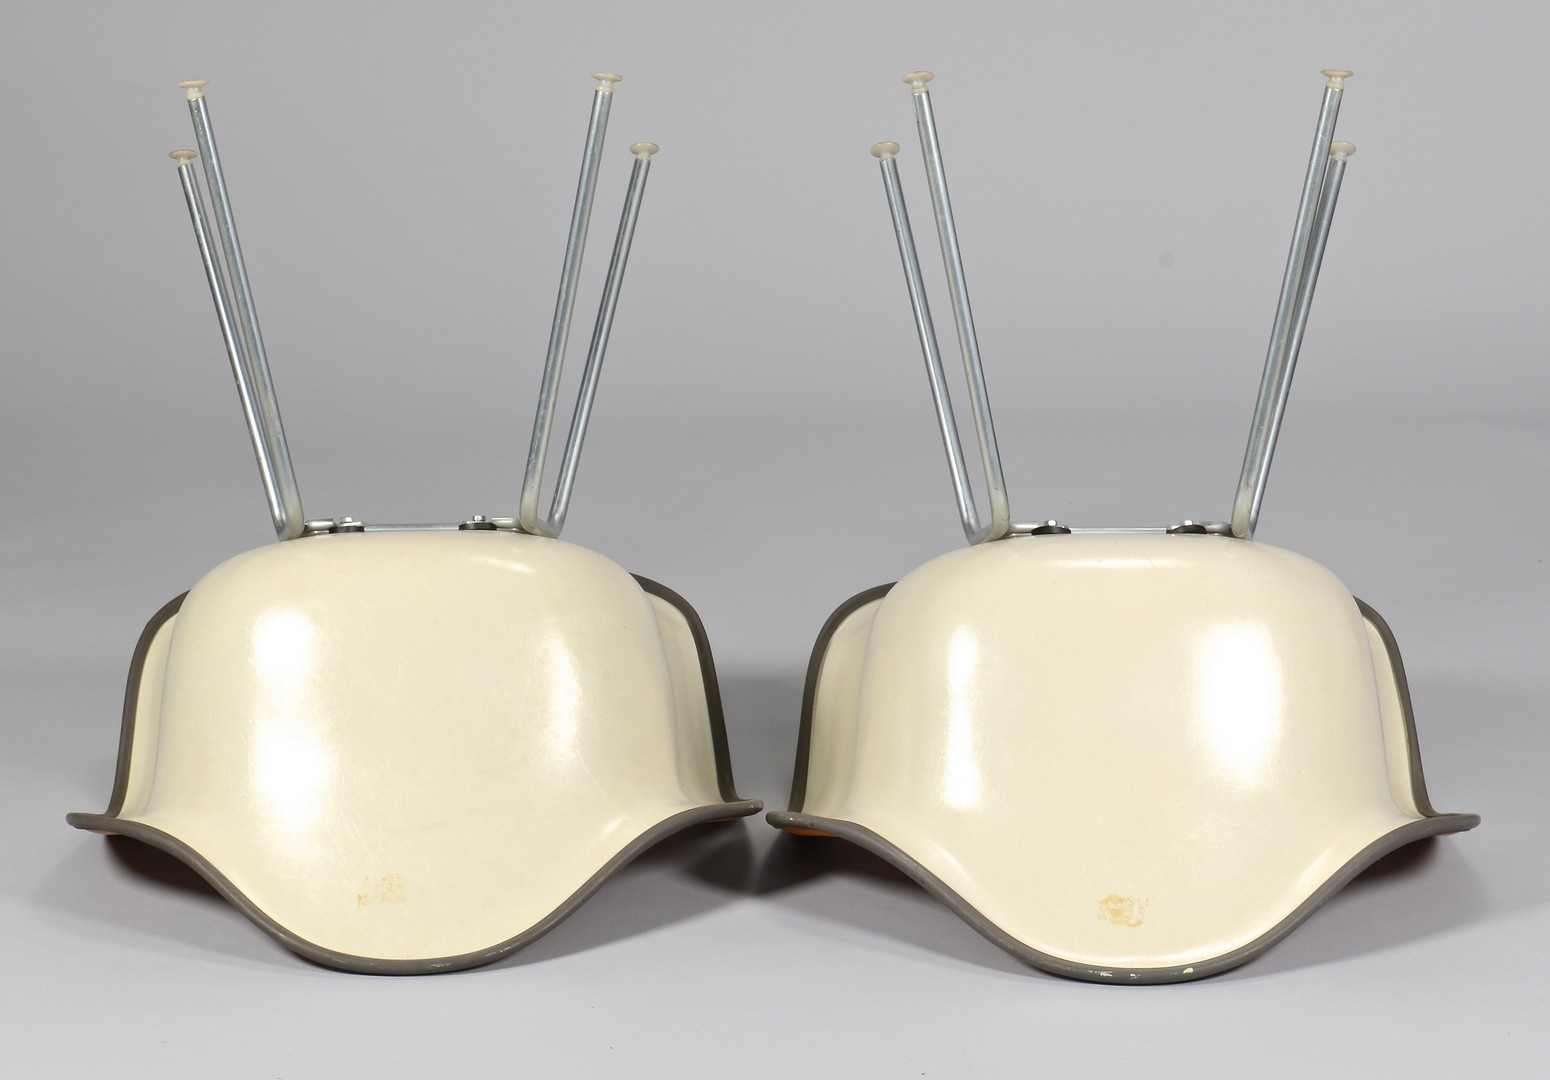 Lot 452: 3 Eames for Herman Miller Chairs, including Rocker